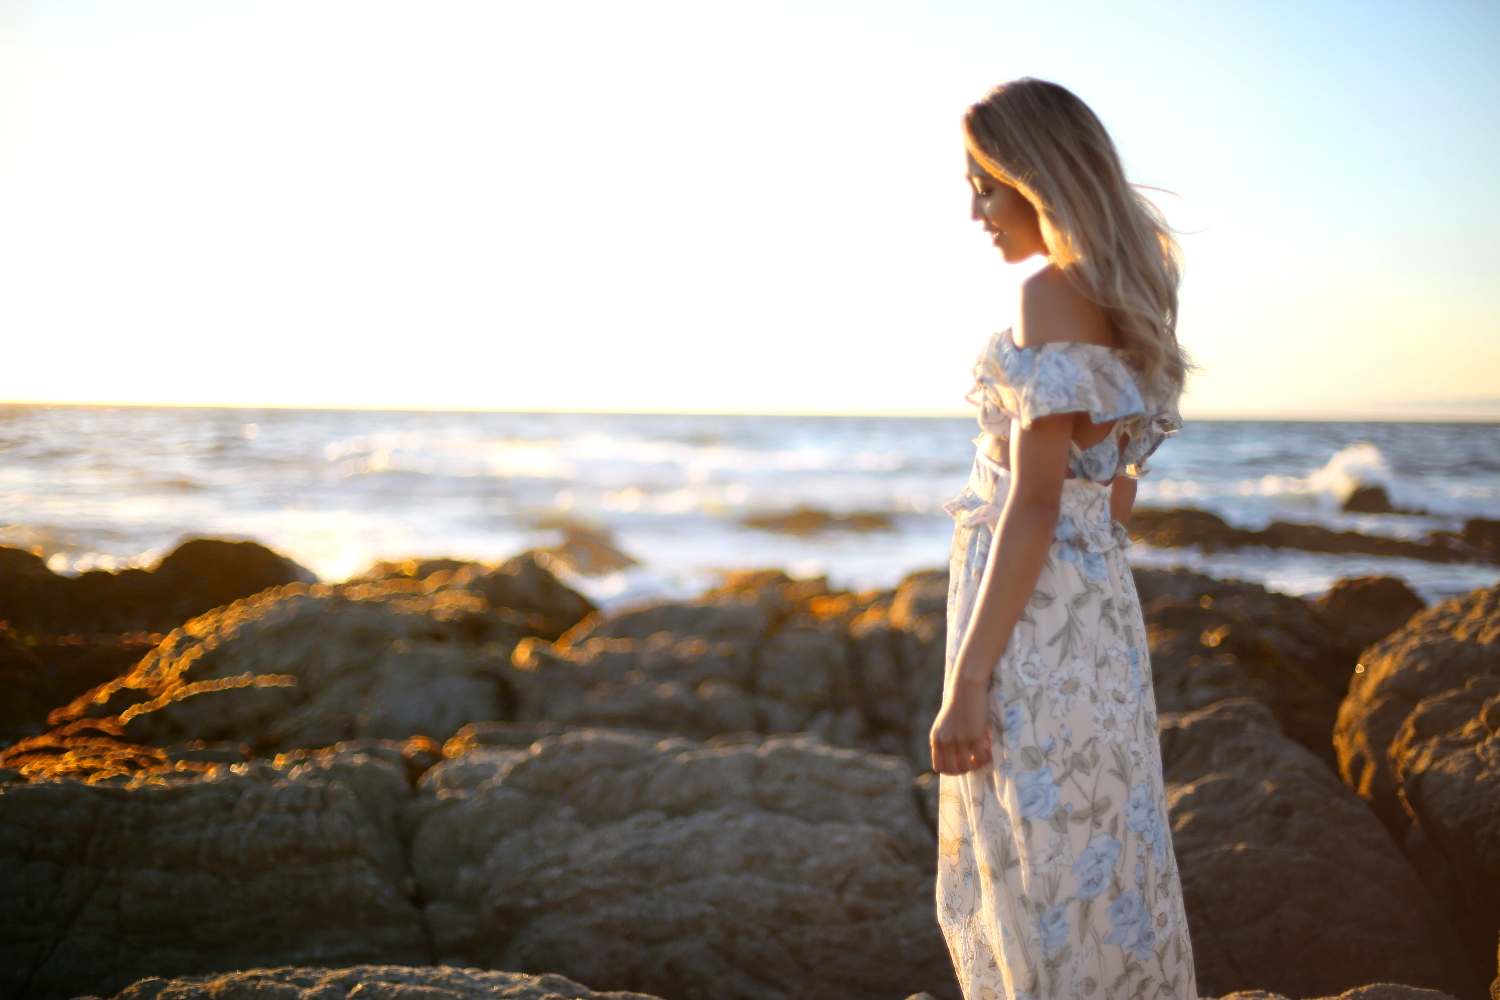 Beyond Basic Blog Wildest Dreams Carmel Monterey 17 Mile Drive California For Love and Lemons Cadence Dress